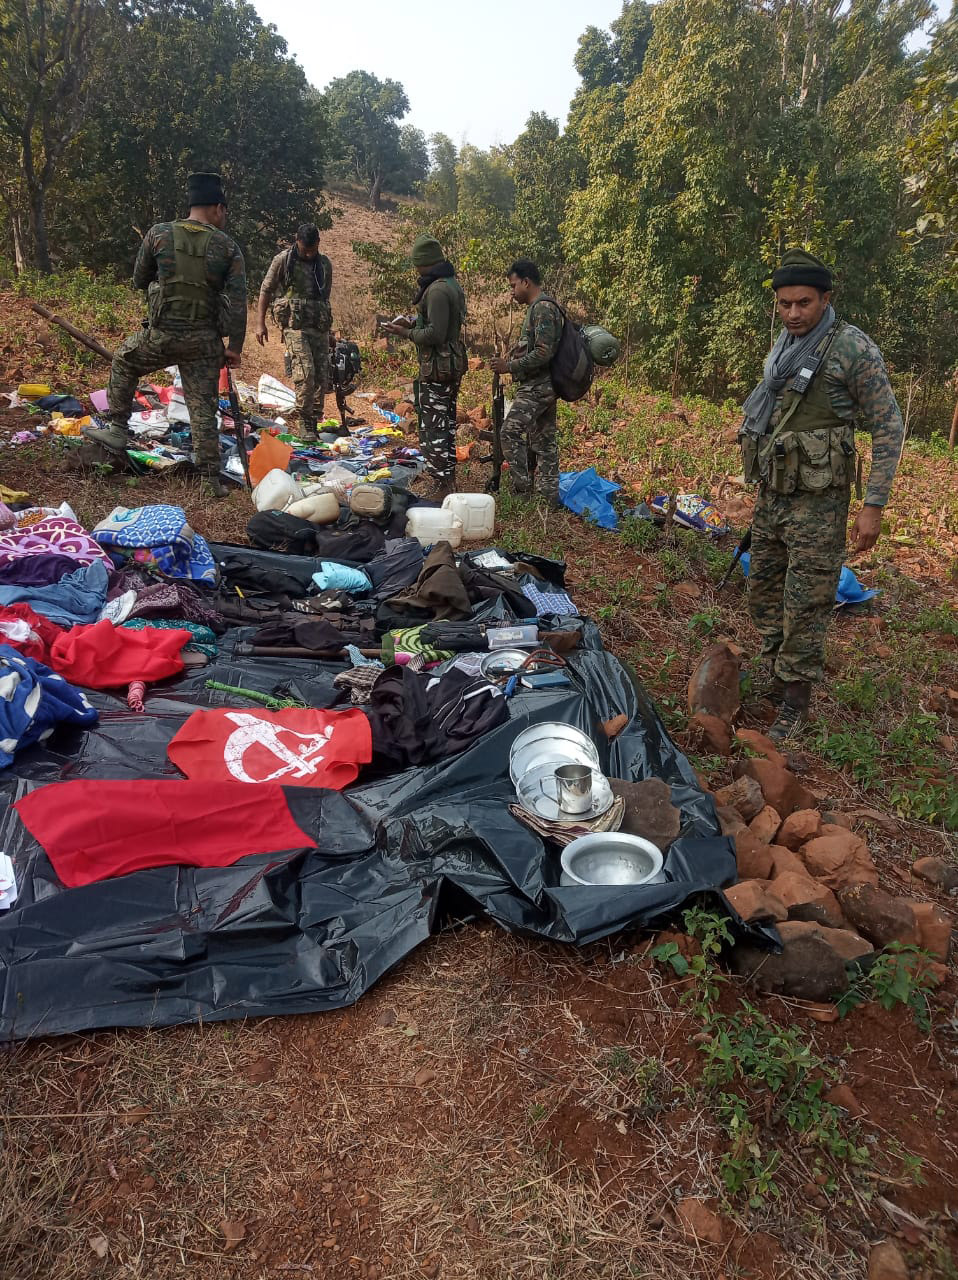 Paramilitary forces look at materials, including ammunition and IEDs,  left by the naxals near the encounter spot in West Singhbhum on Sunday.